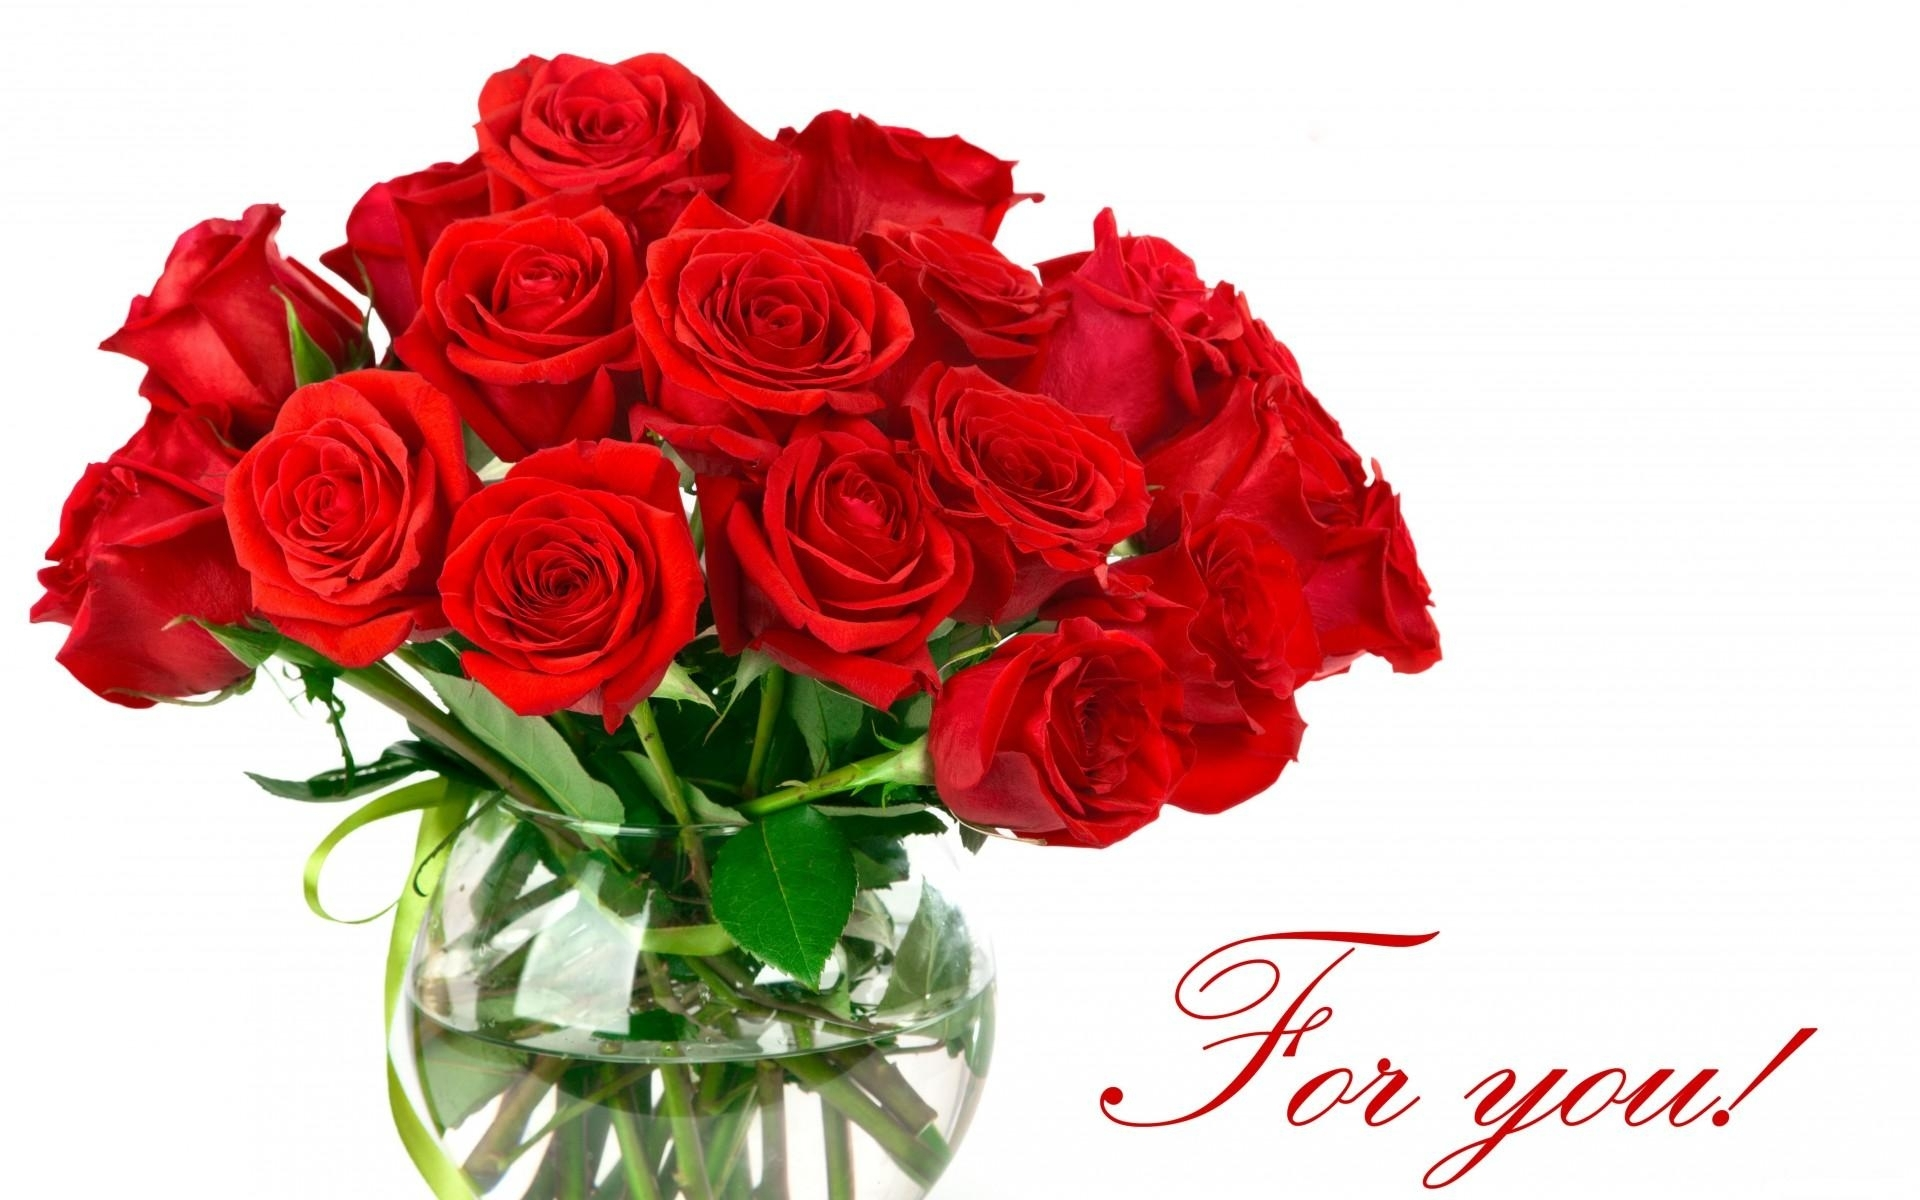 Bunch of flowers images download clipground - Bunch of roses hd images ...